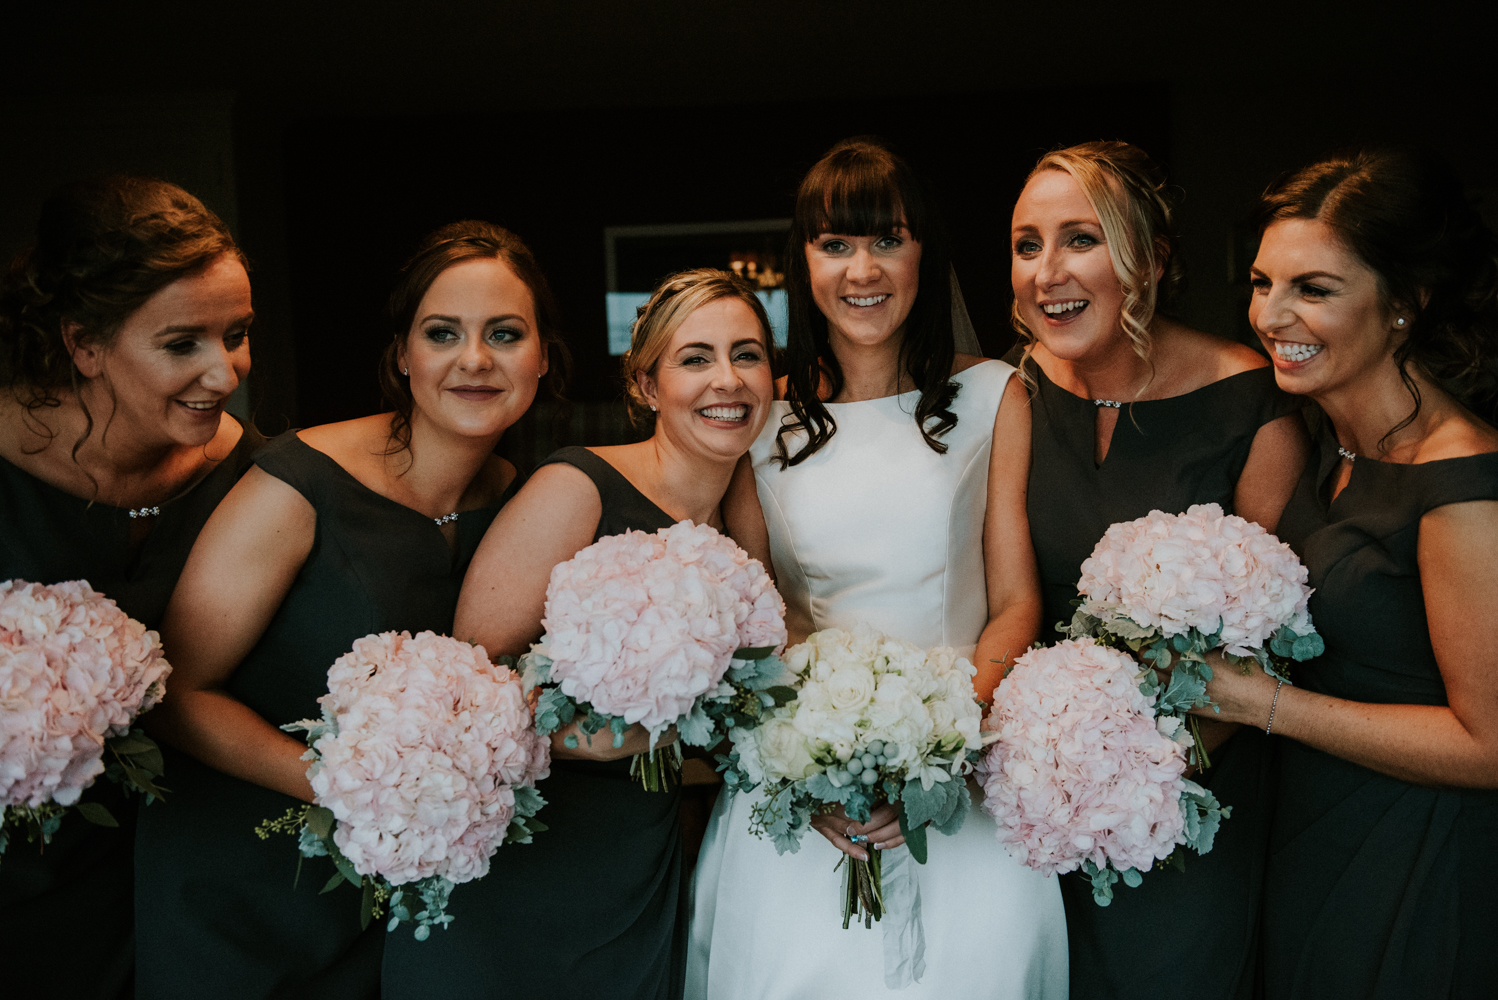 Scottish Oban Wedding Florist Website